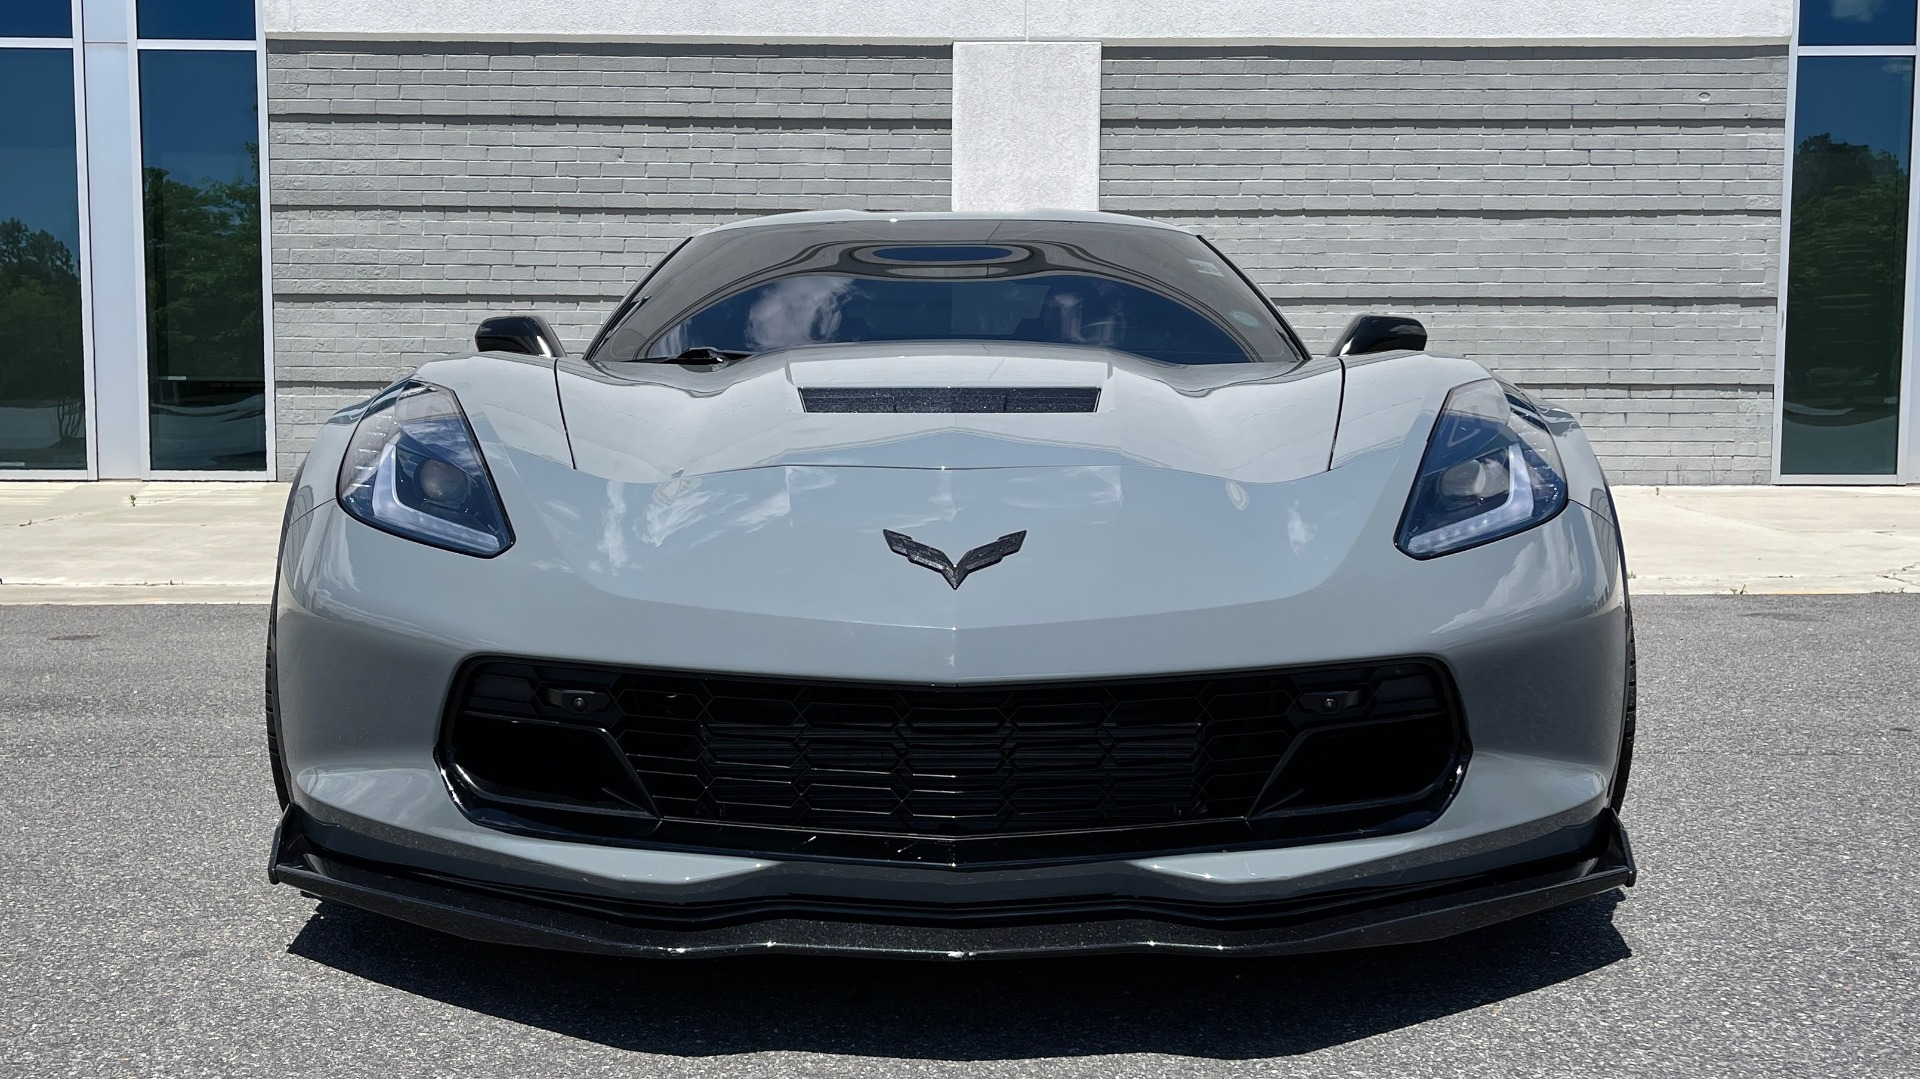 Used 2019 Chevrolet CORVETTE GRAND SPORT 3LT / SUPERCHARGED 6.2L V8 / NAV / REARVIEW for sale Sold at Formula Imports in Charlotte NC 28227 16